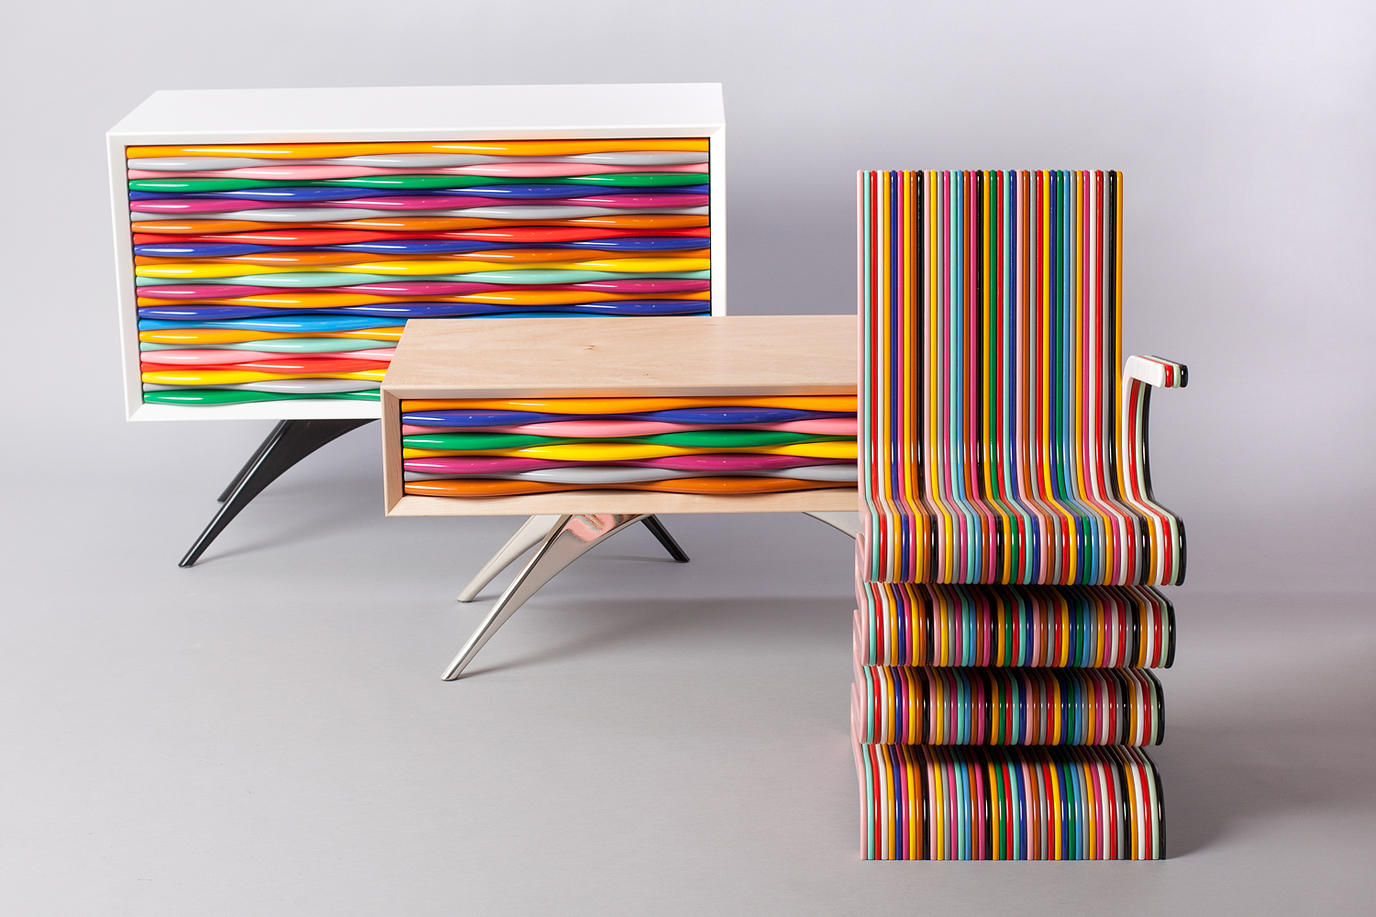 Design pop mobili multicolor di anthony hartley for Articoli di design per mobili